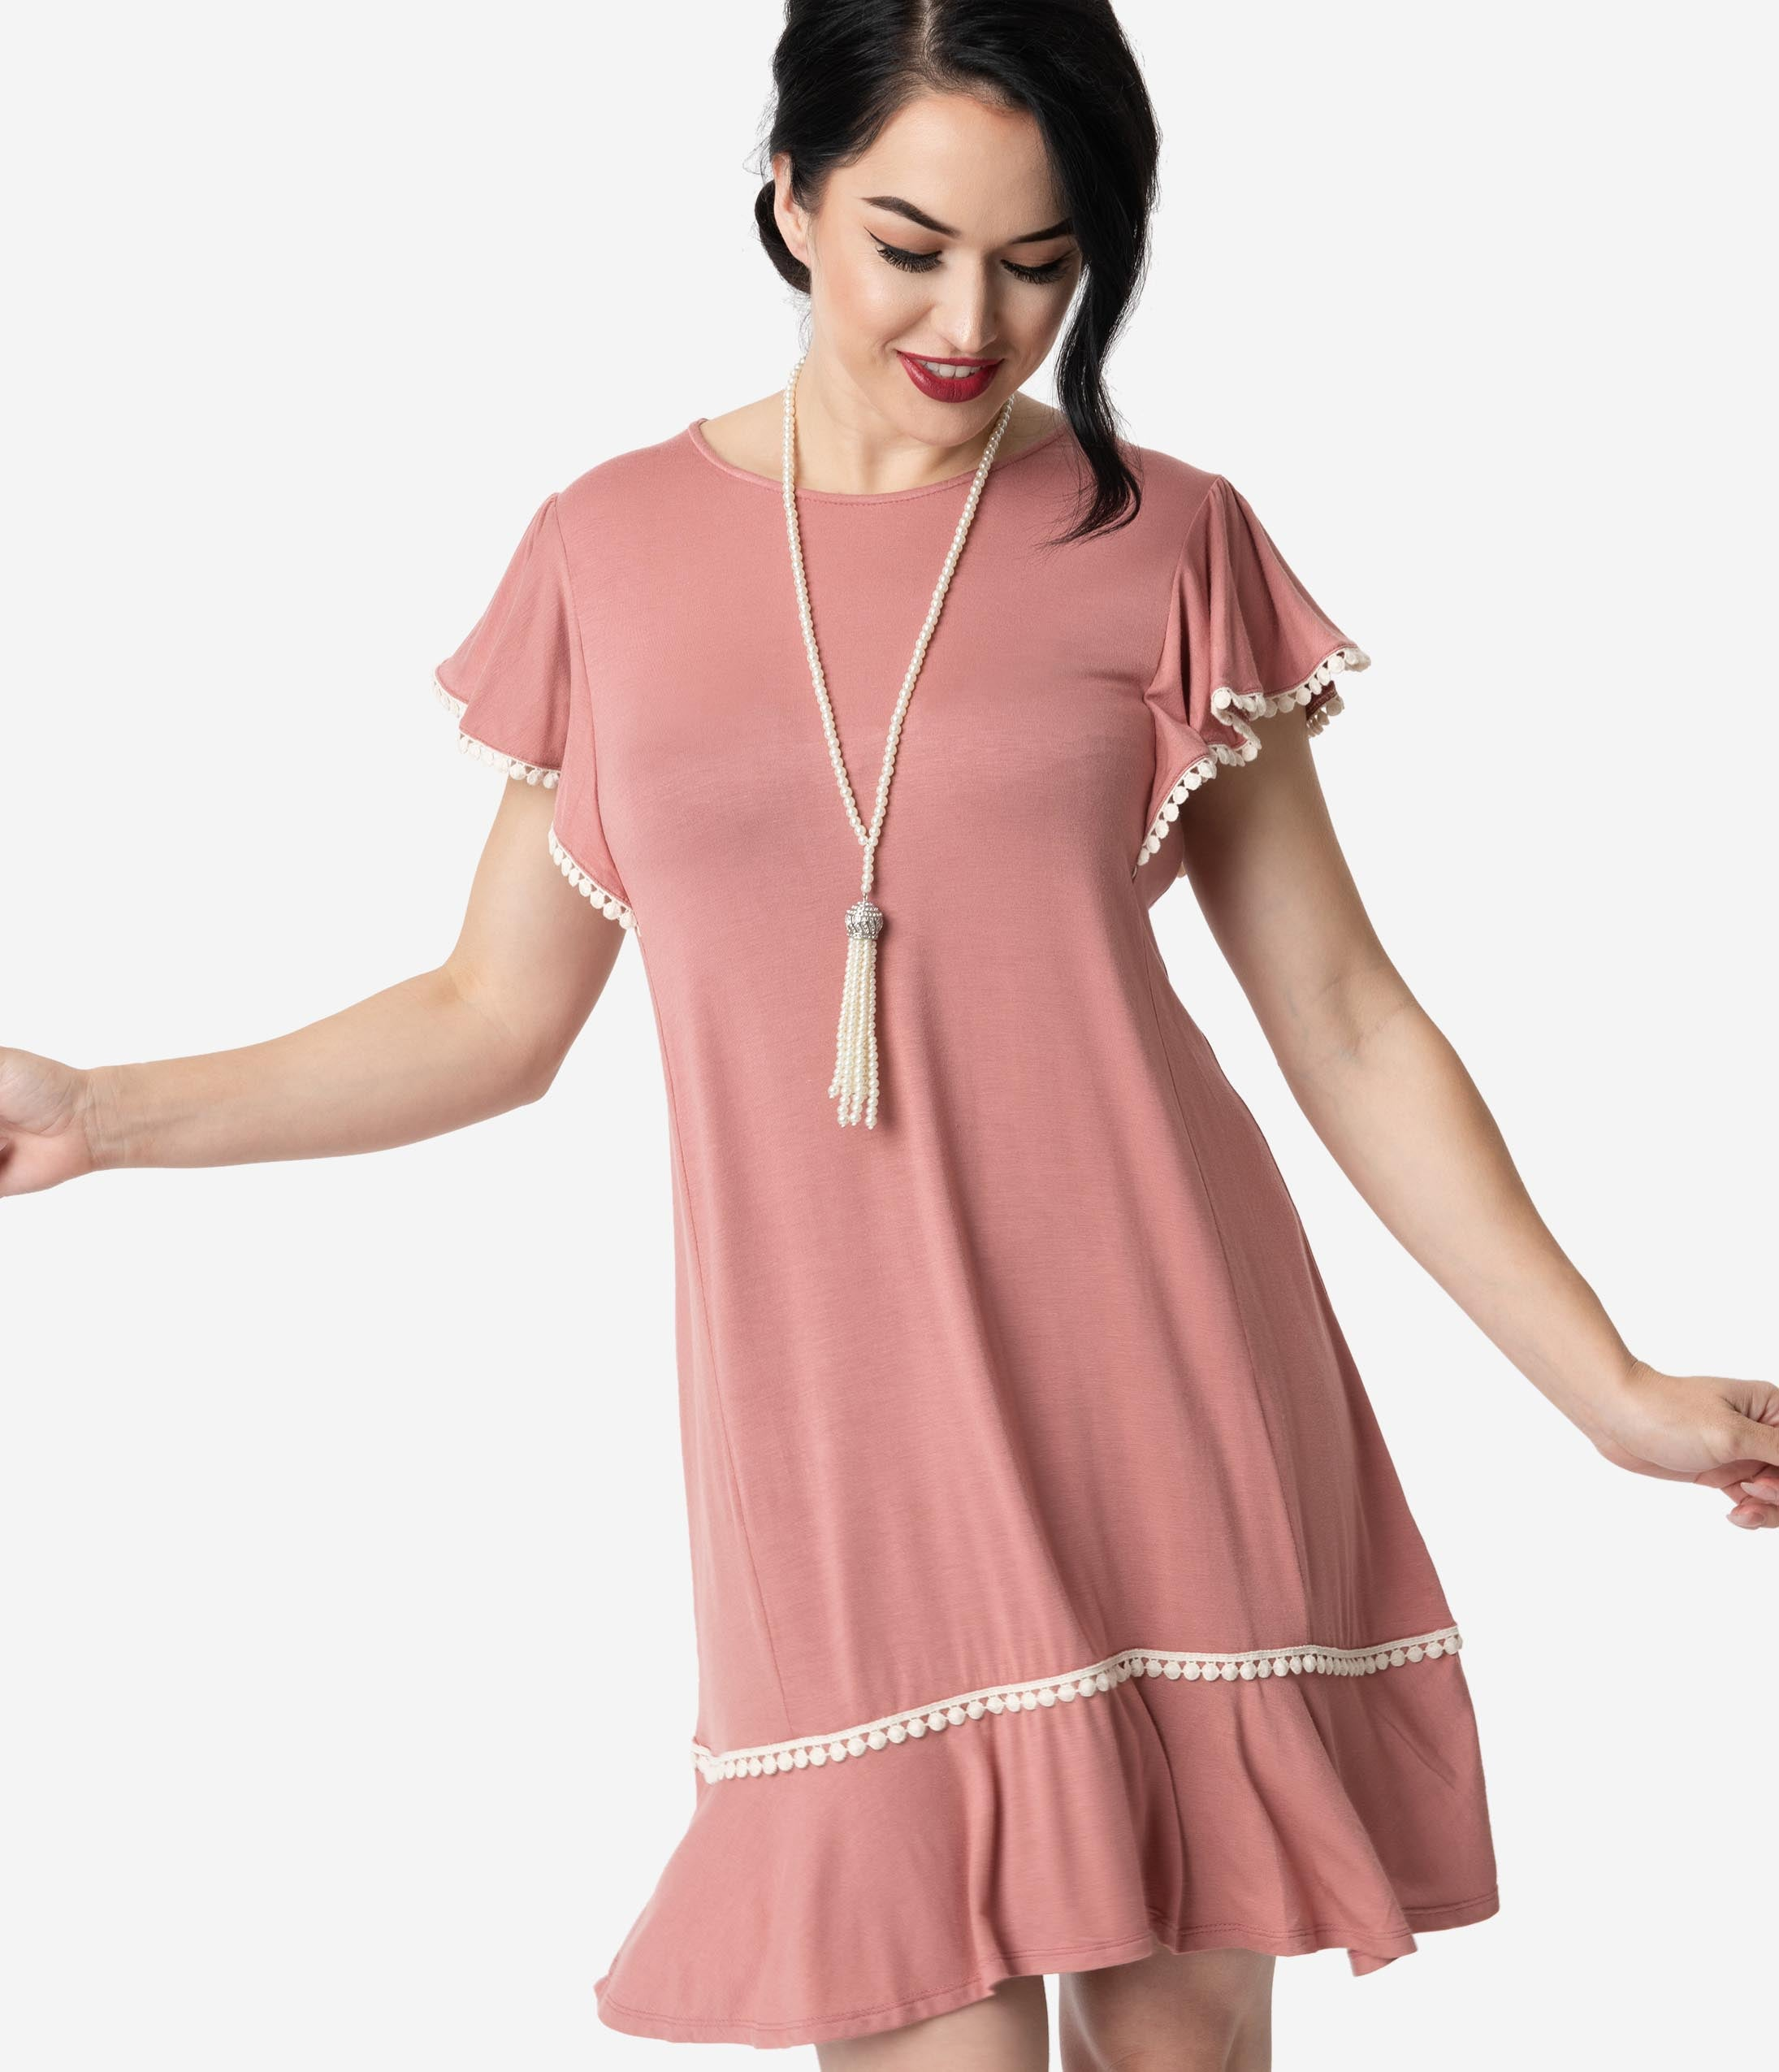 1920s Day Dresses, Tea Dresses, Mature Dresses with Sleeves 1920S Style Mauve Pink Butterfly Sleeve Day Dress $48.00 AT vintagedancer.com